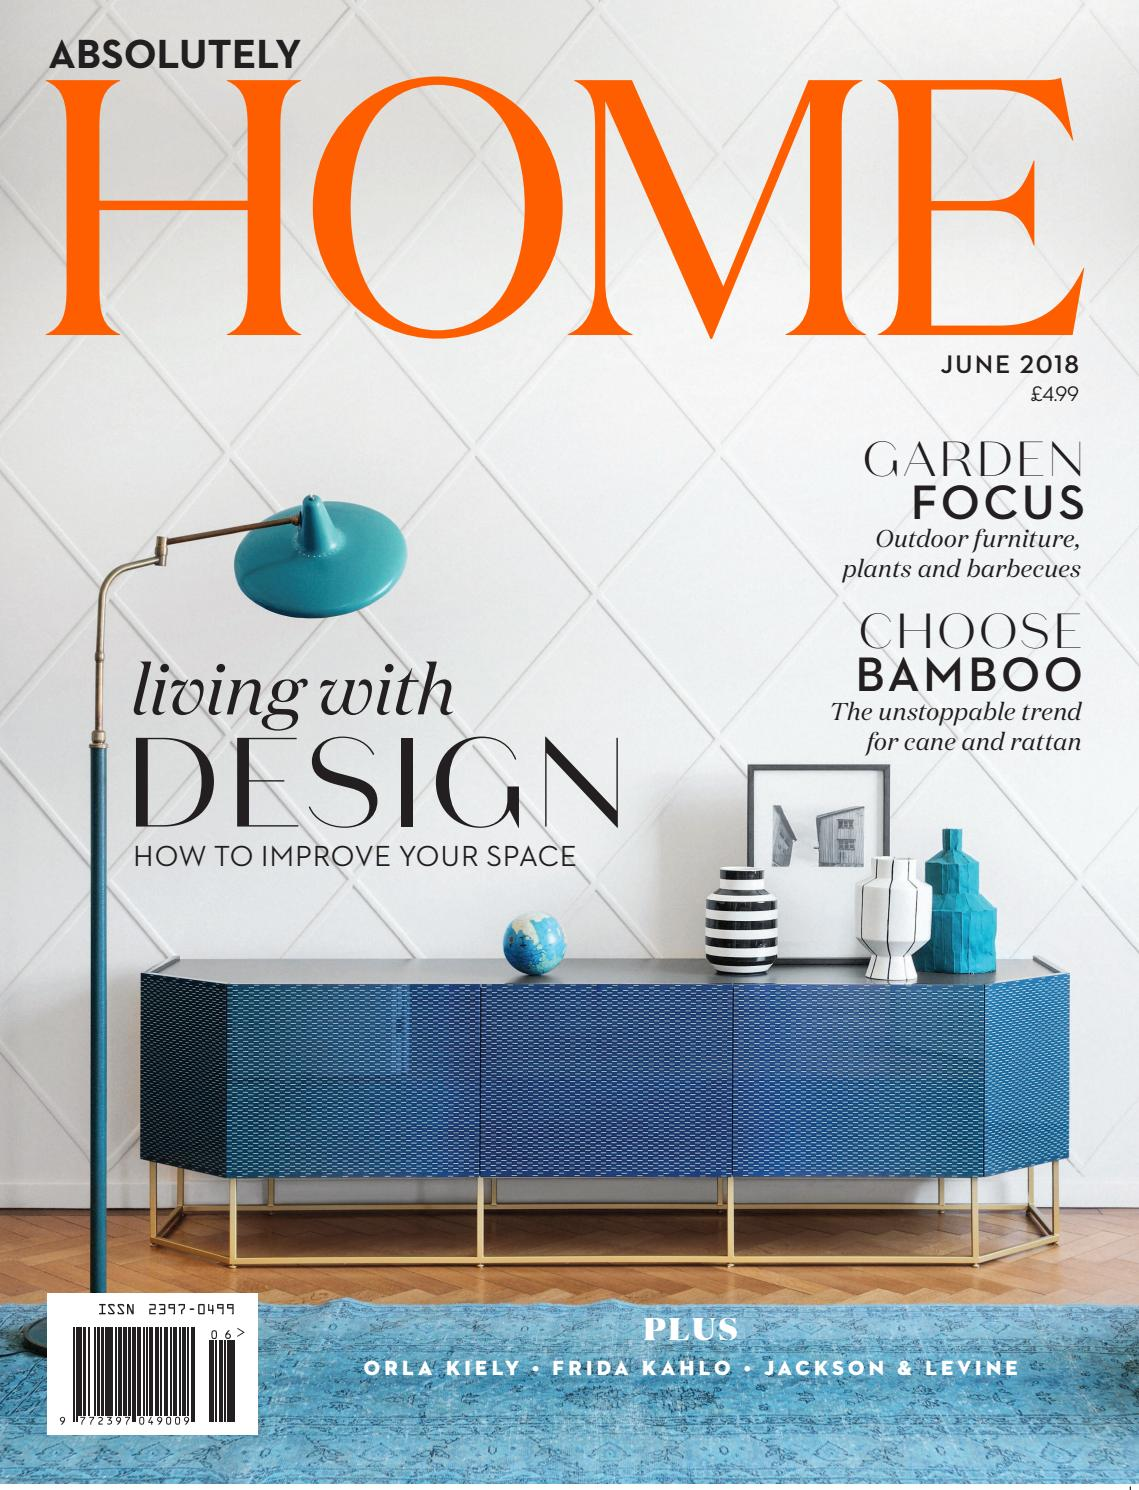 51adc9603628 Absolutely Home June 2018 by Zest Media London - issuu